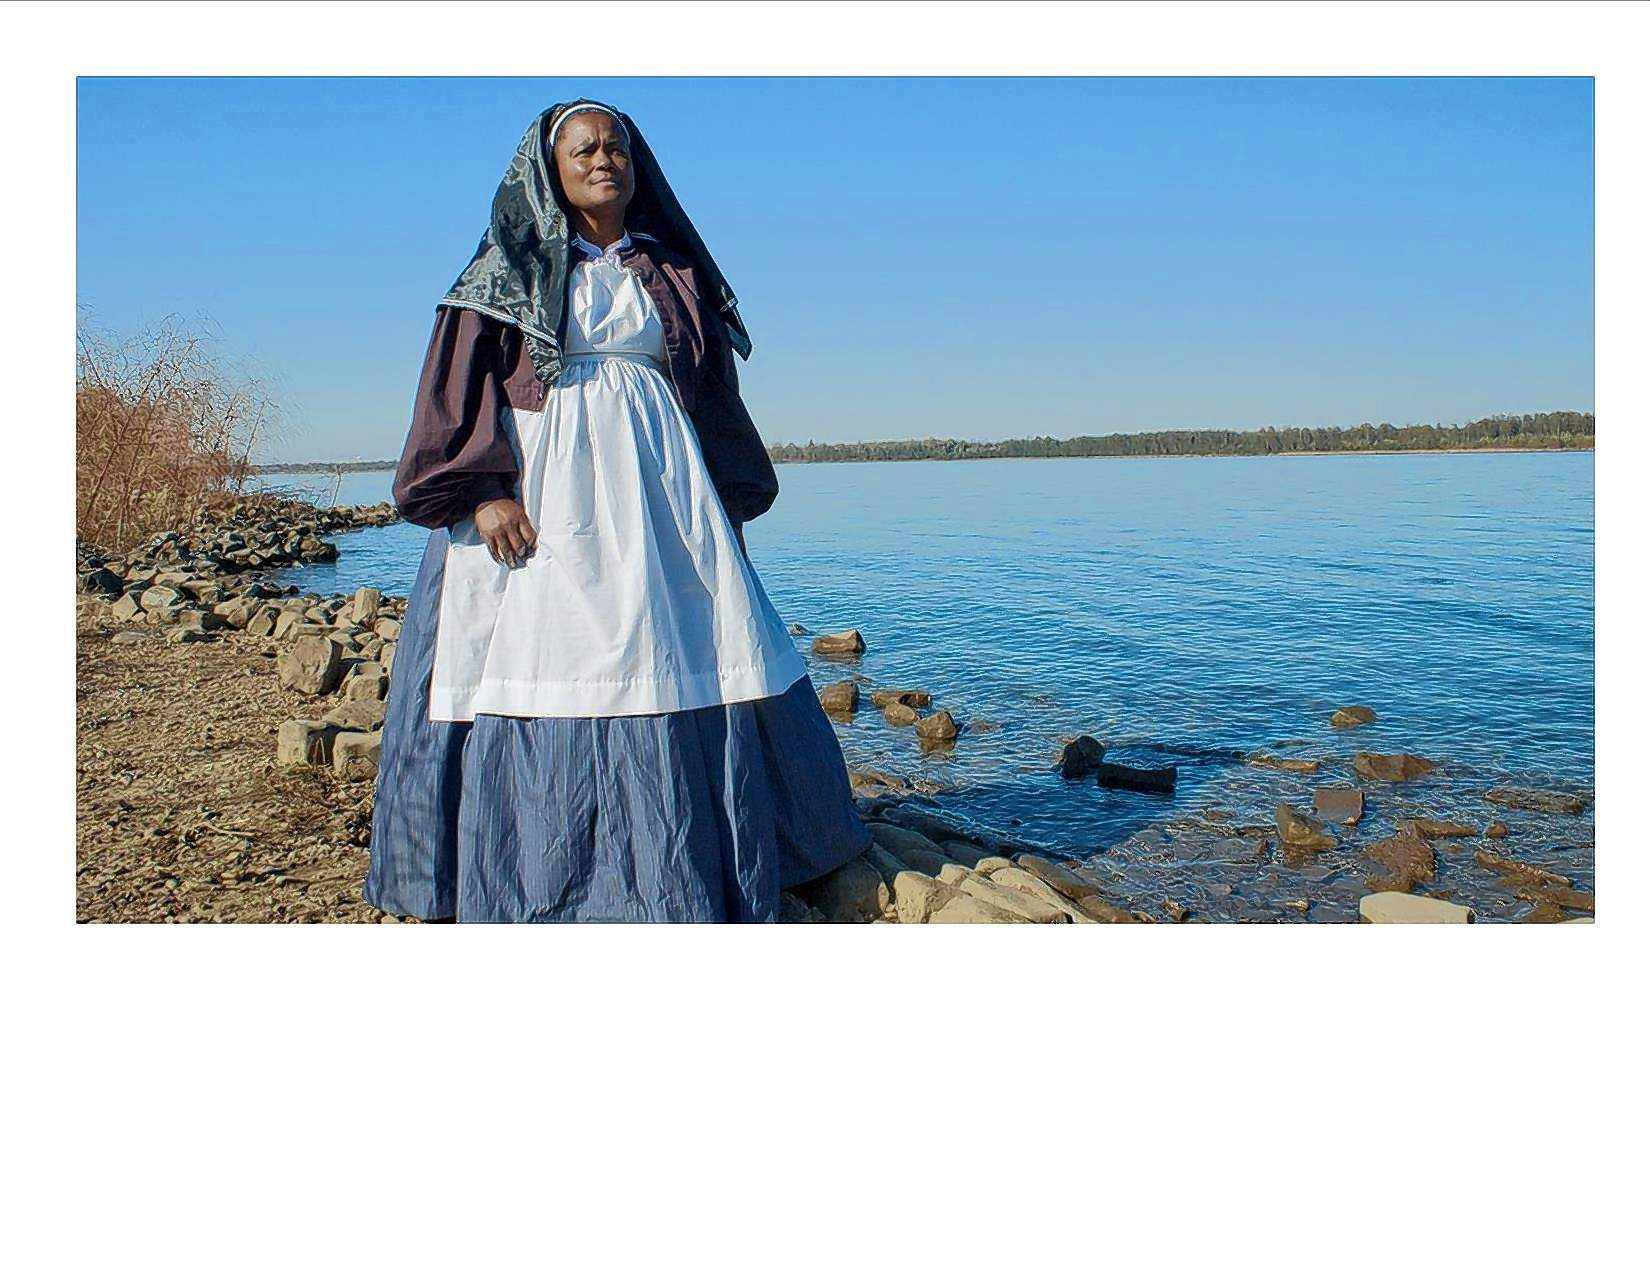 Marlene Rivero will share the story of escaped slave Ann Stokes during an event Feb. 23 at the Carbondale Public Library.